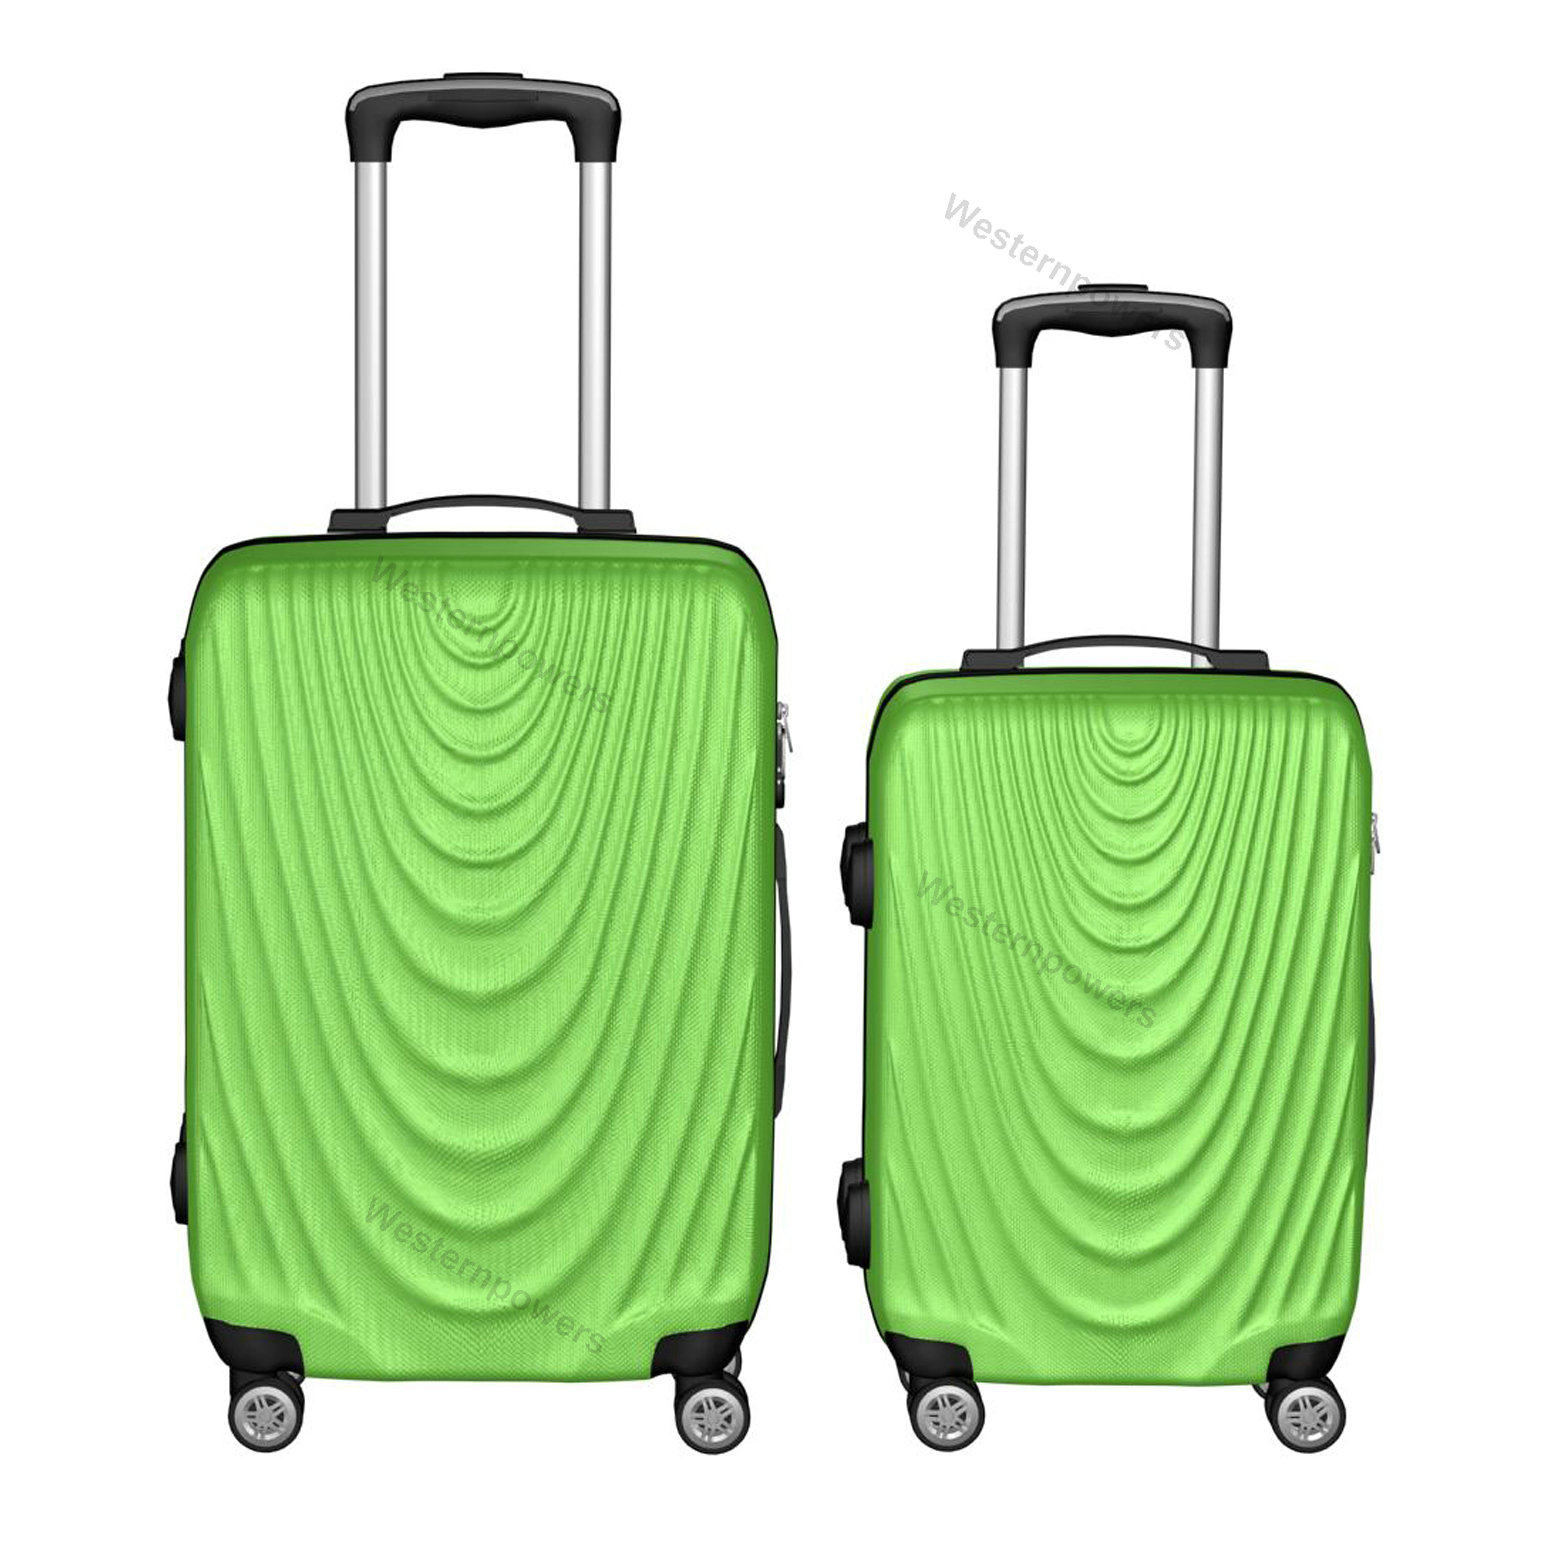 5e58e4c8dd2b Details about 2 Piece Lightweight Suitcase Hardside Spinner Luggage Set  20'' 24'' Green